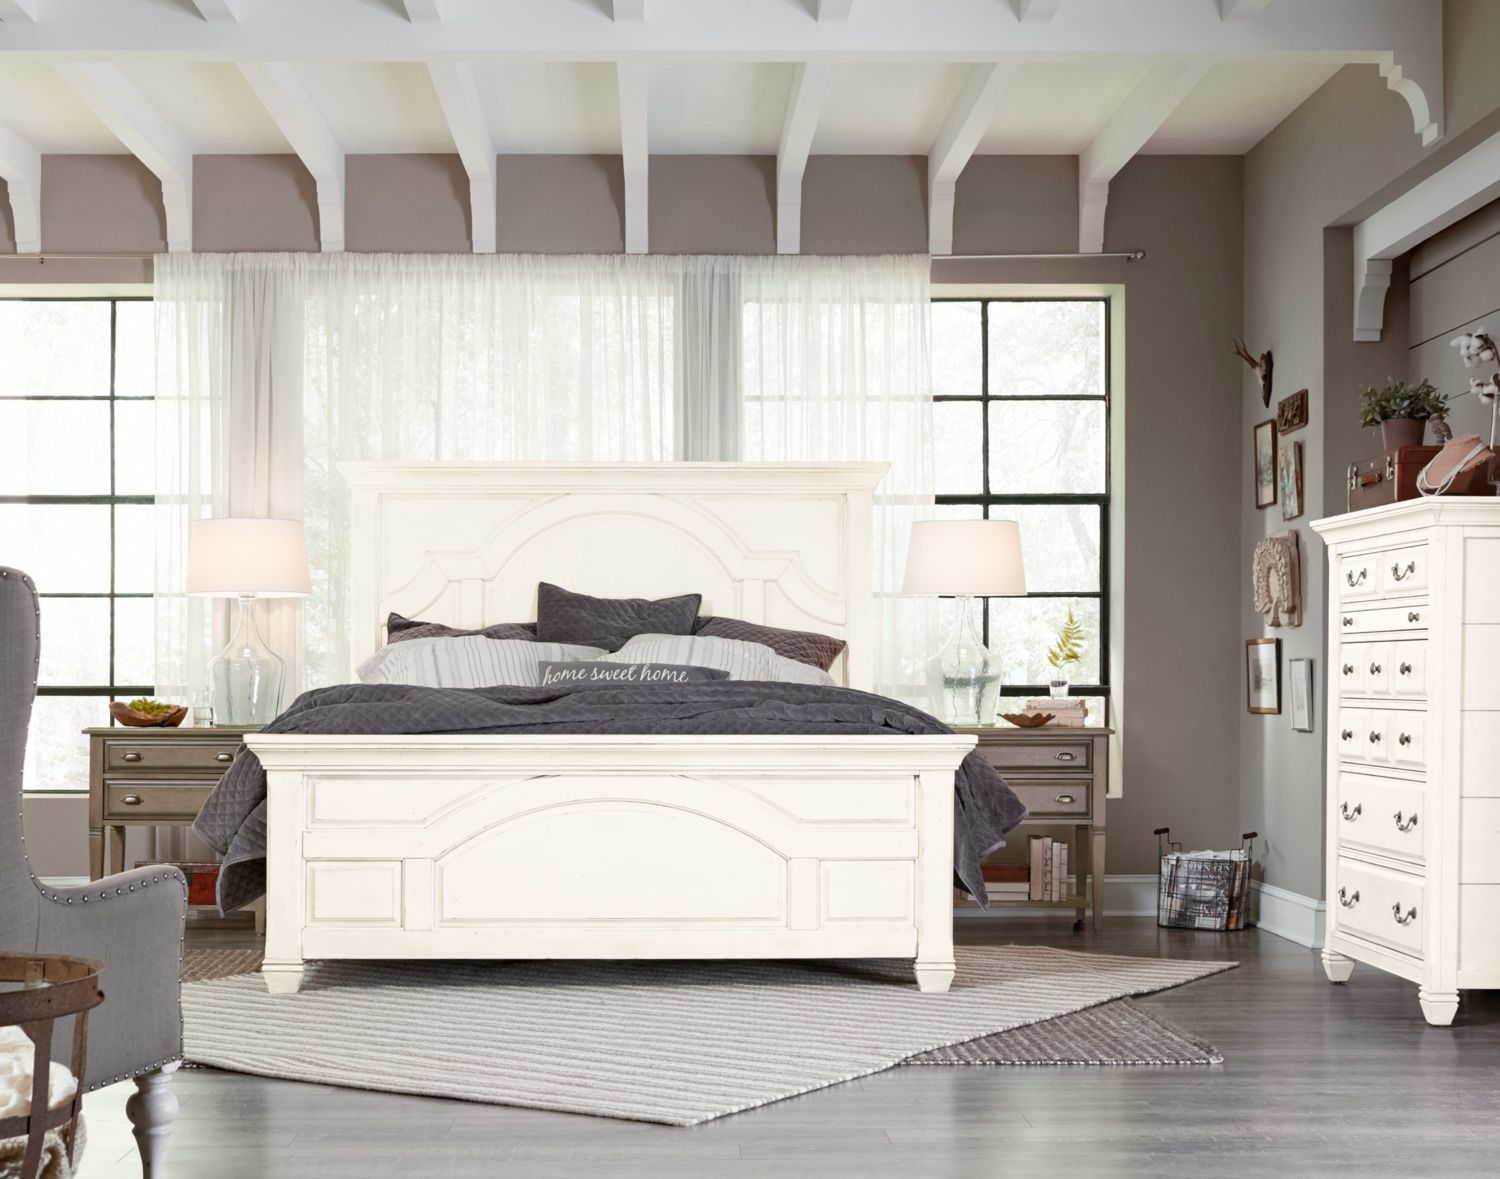 Lighten up your room with this Hancock Park king bed